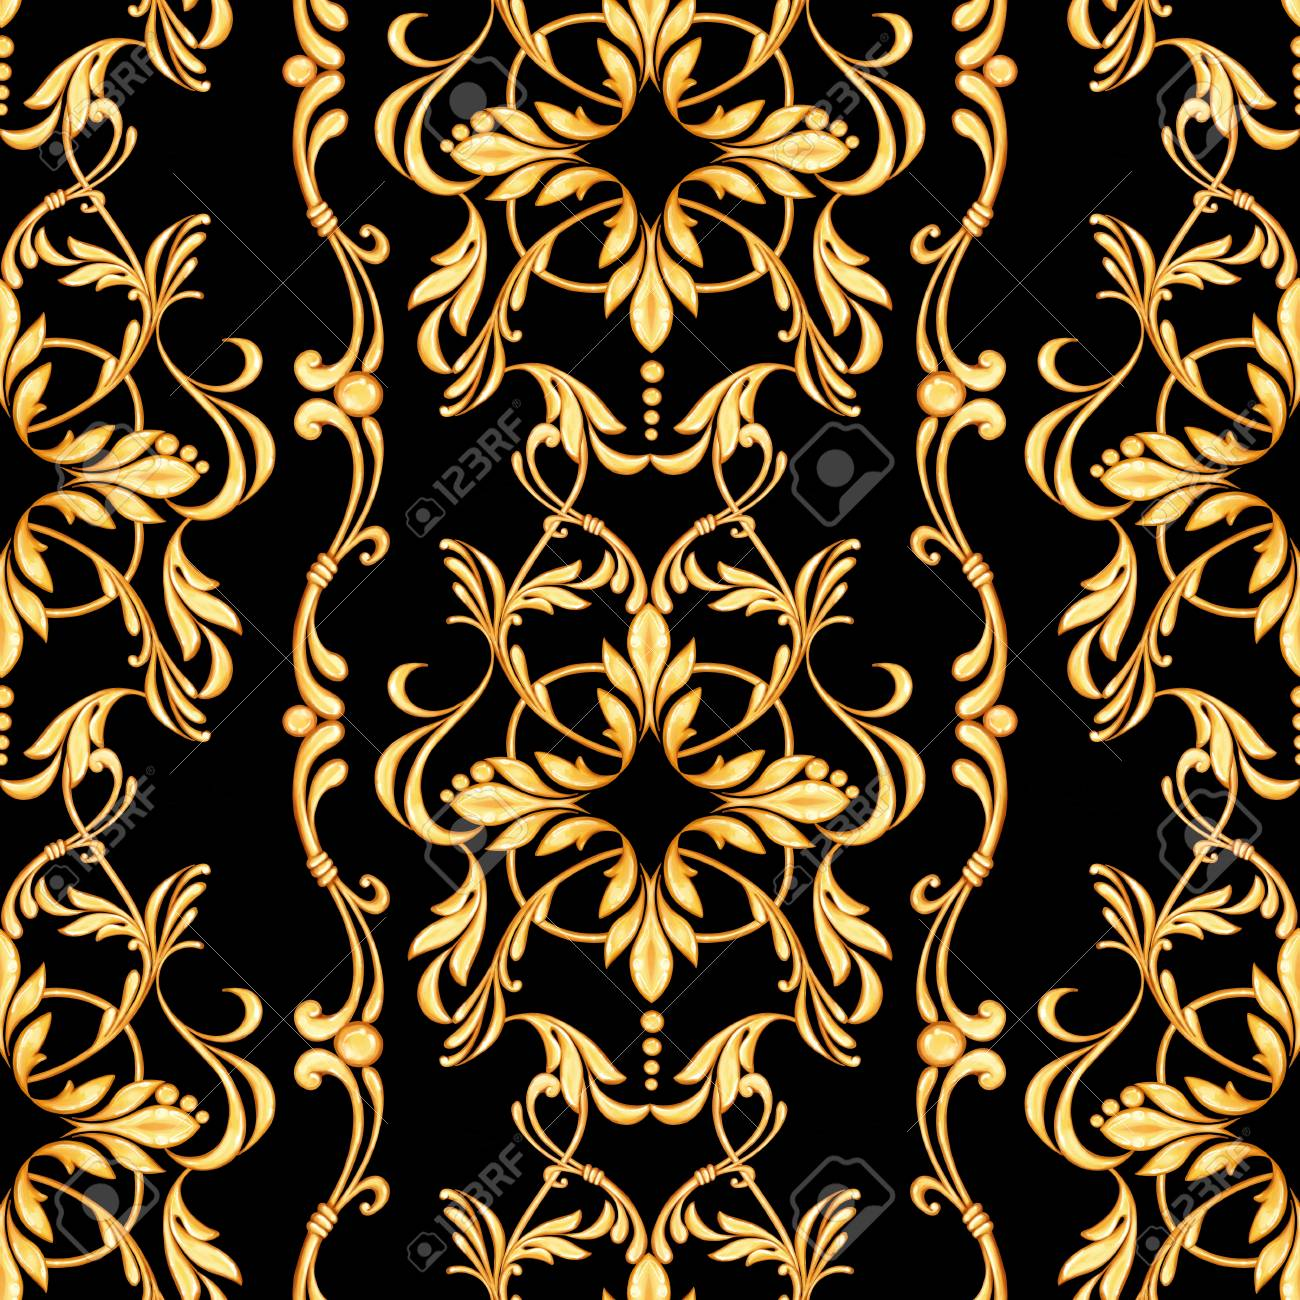 Repetitive Ornate Chevron Patterns Filled with Baroque Floral Texture Motifs Artful Background for Child Baby Shower Photo Vinyl Studio Prop Photobooth Photoshoot 10x12 FT Photography Backdrop